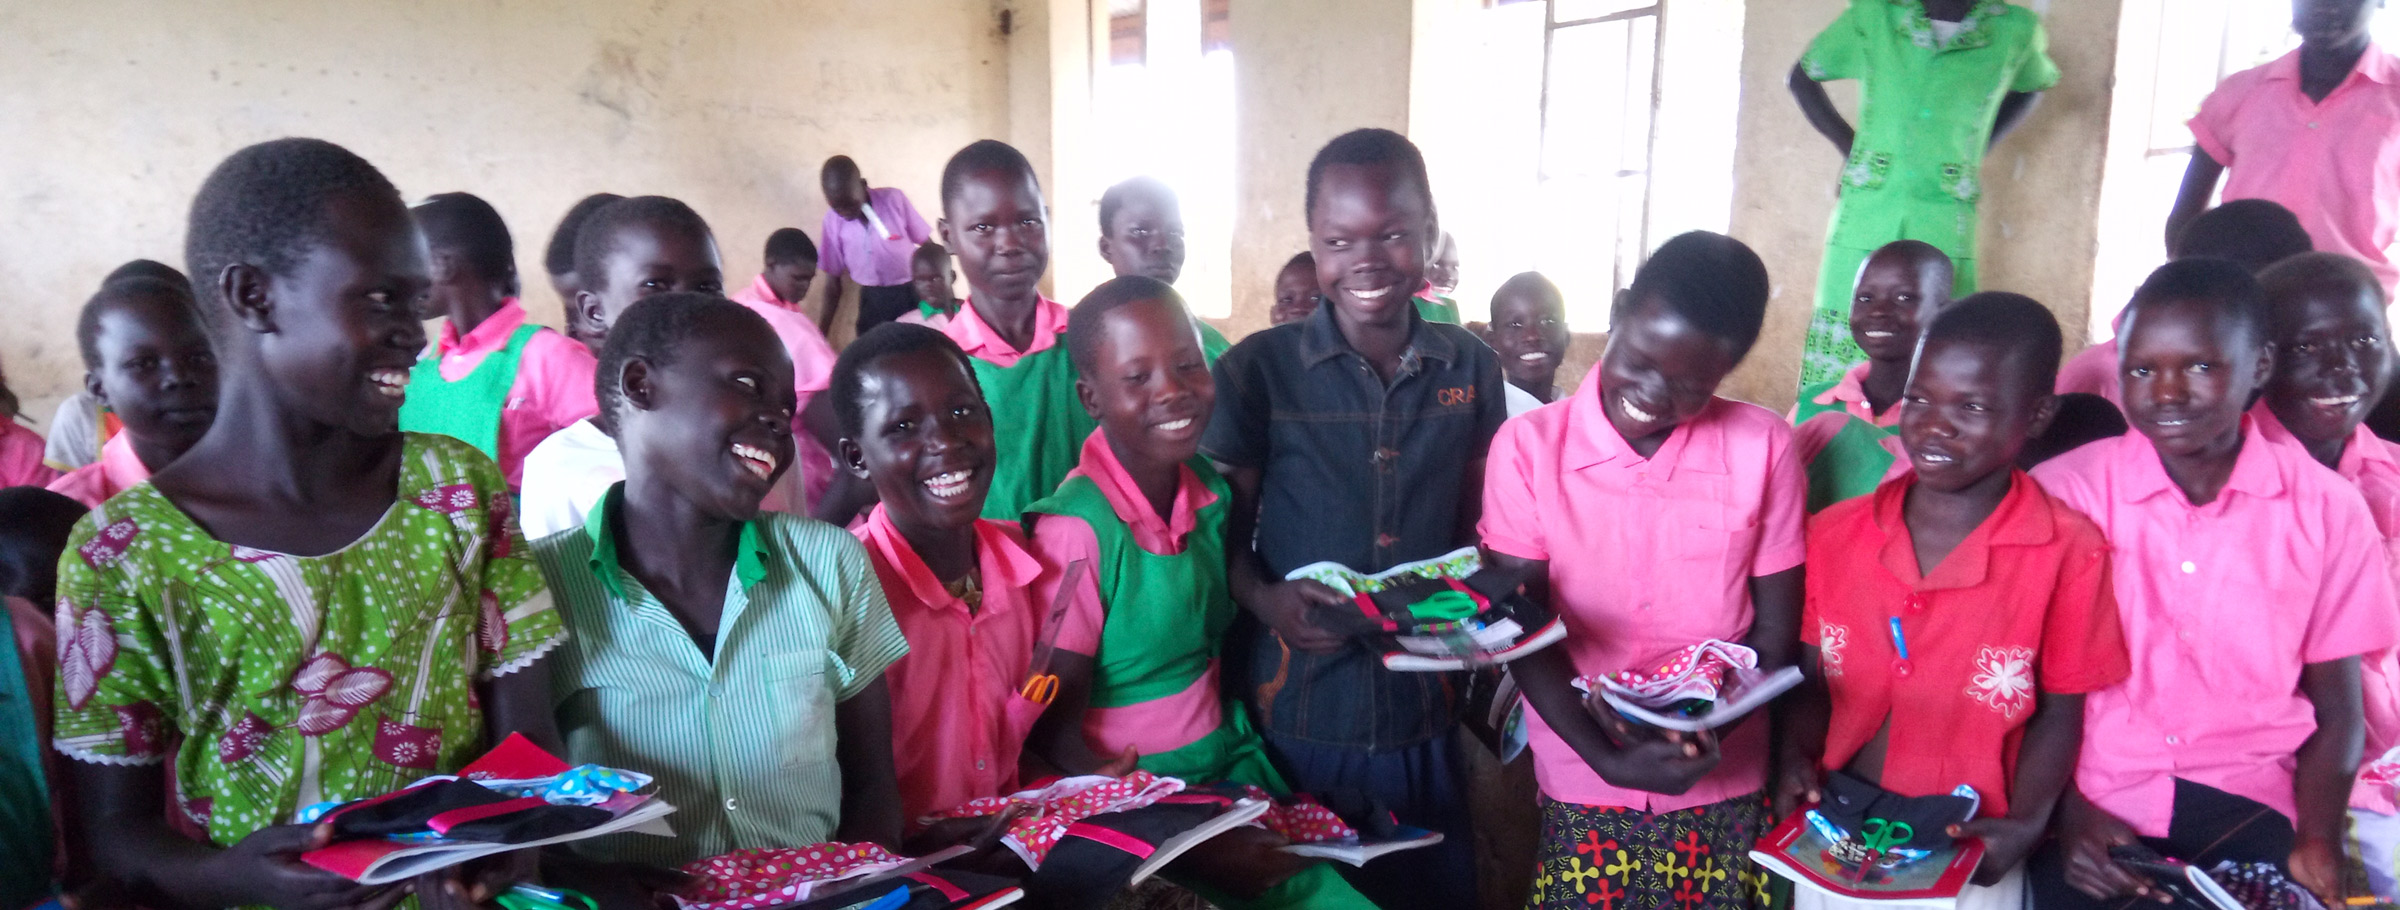 South Sudanese refugee girls reciening their reusable menstrural pads